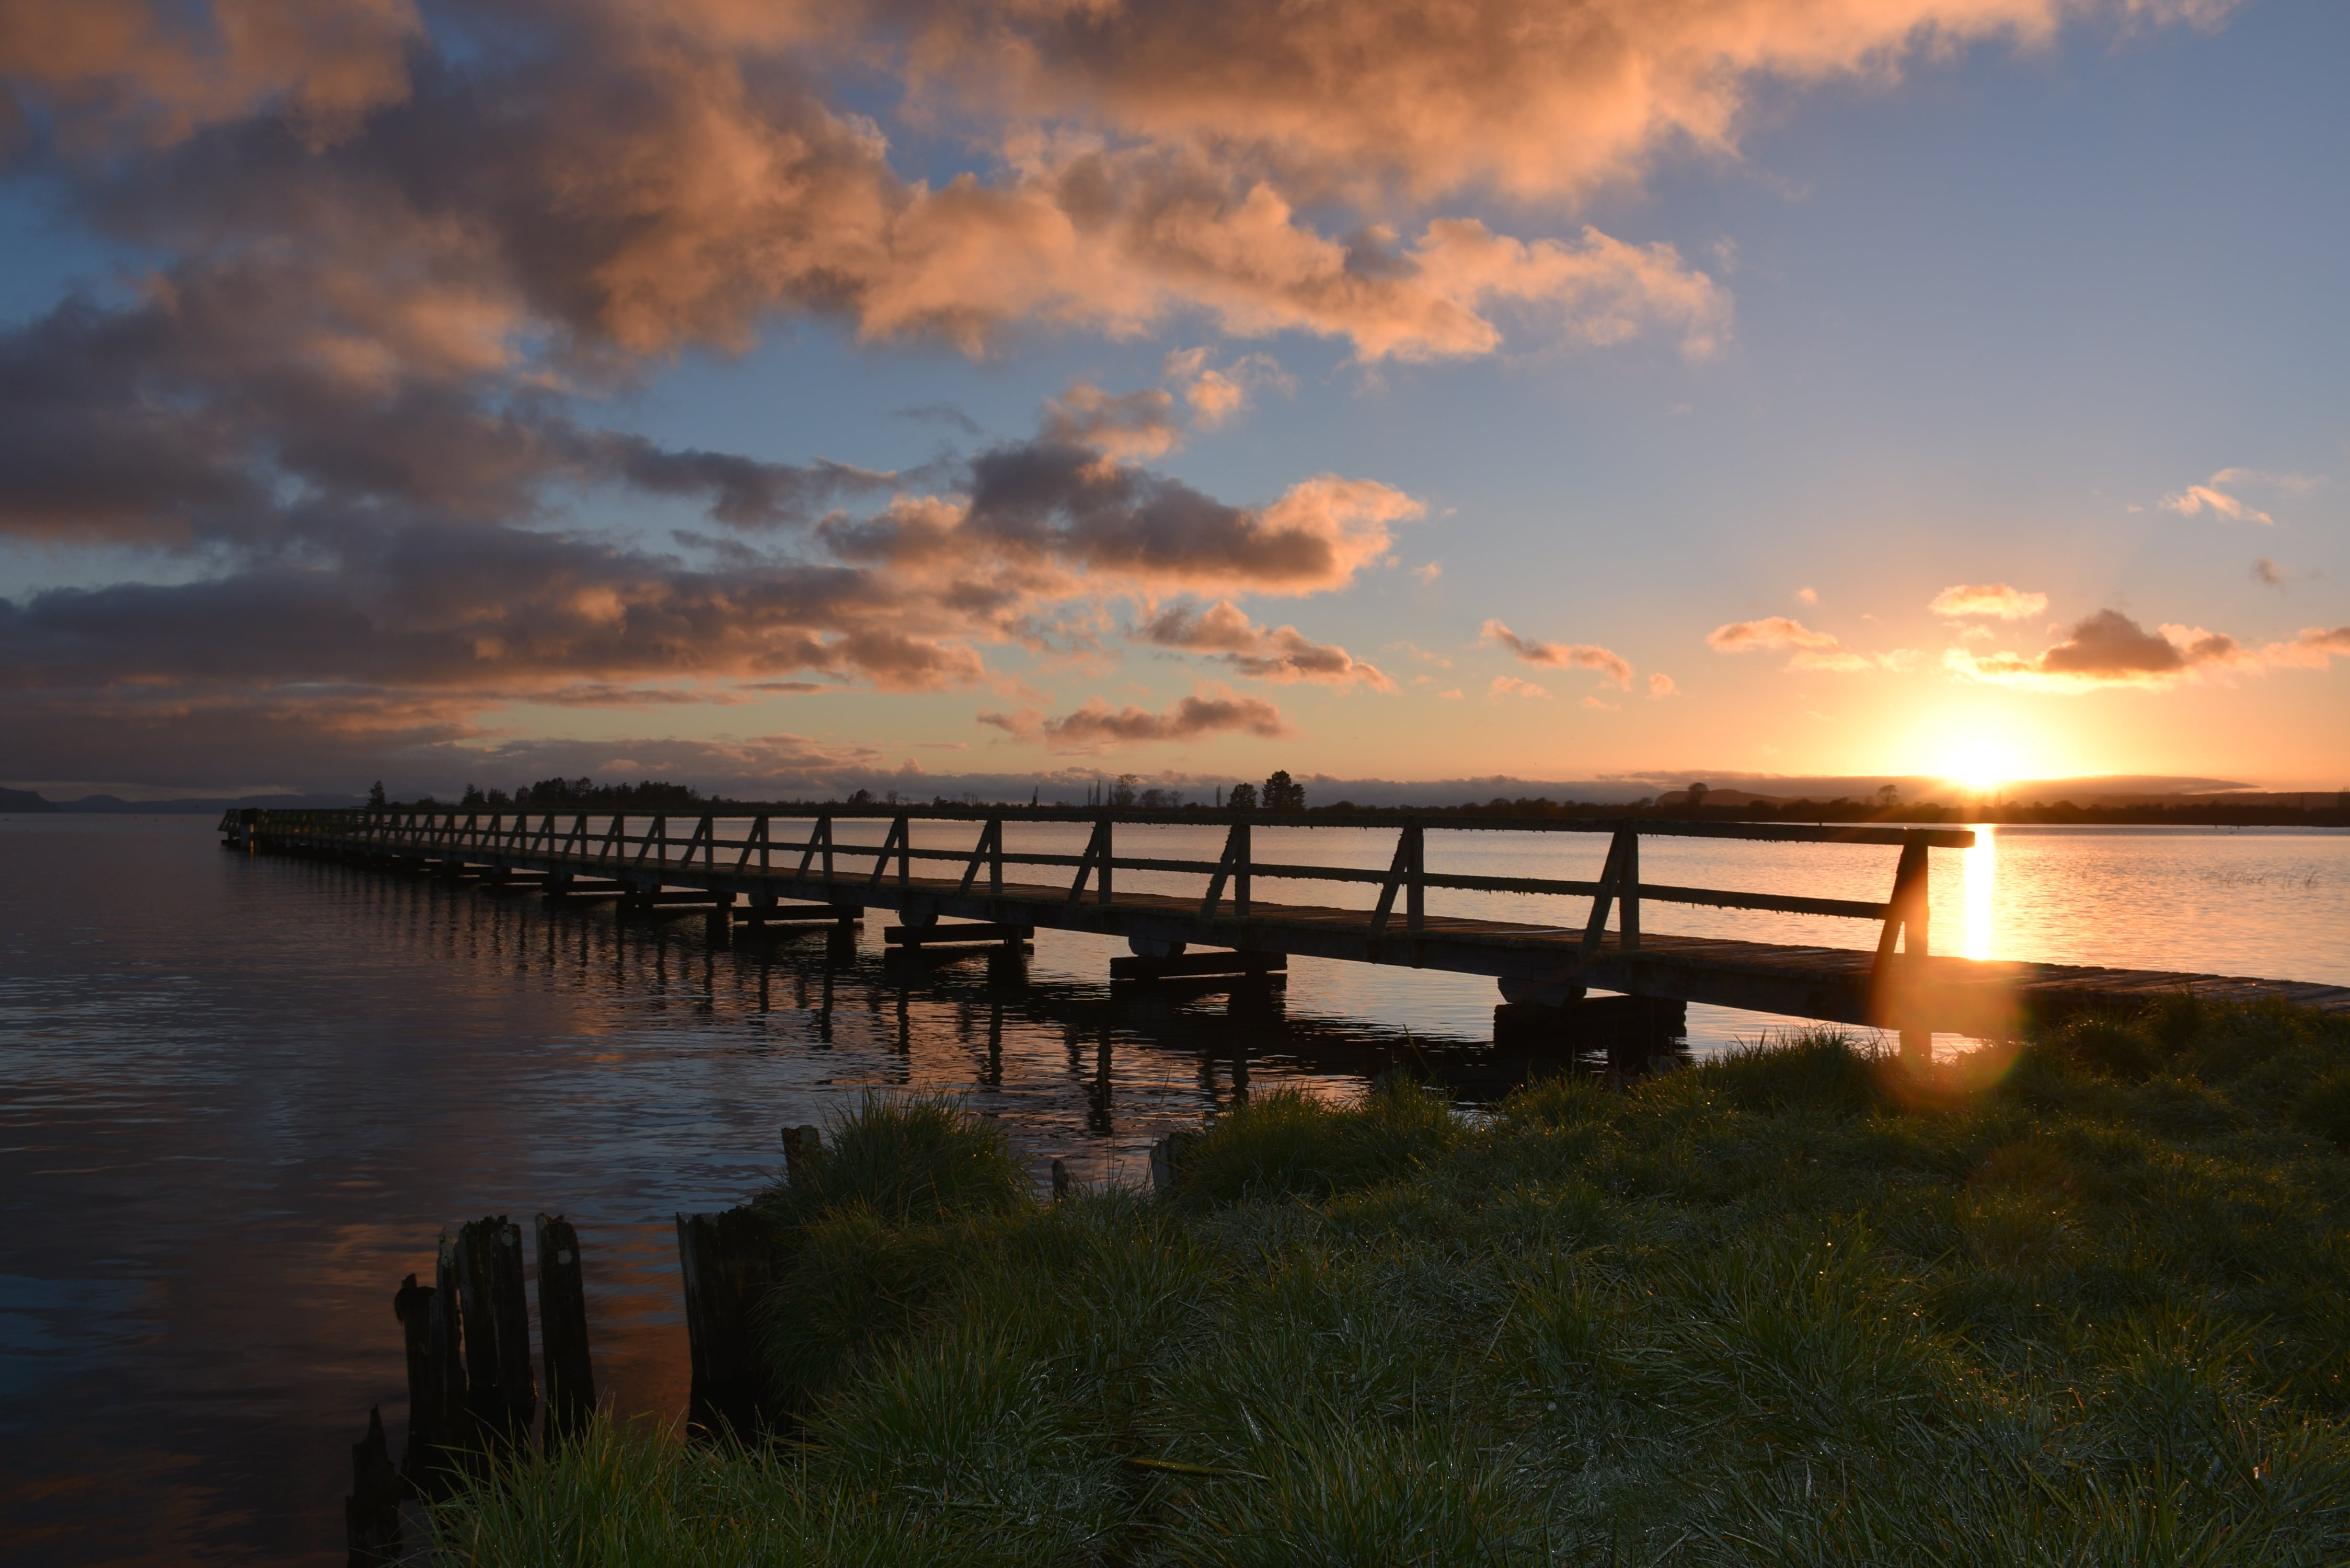 Sunrise at Tokaanu Wharf